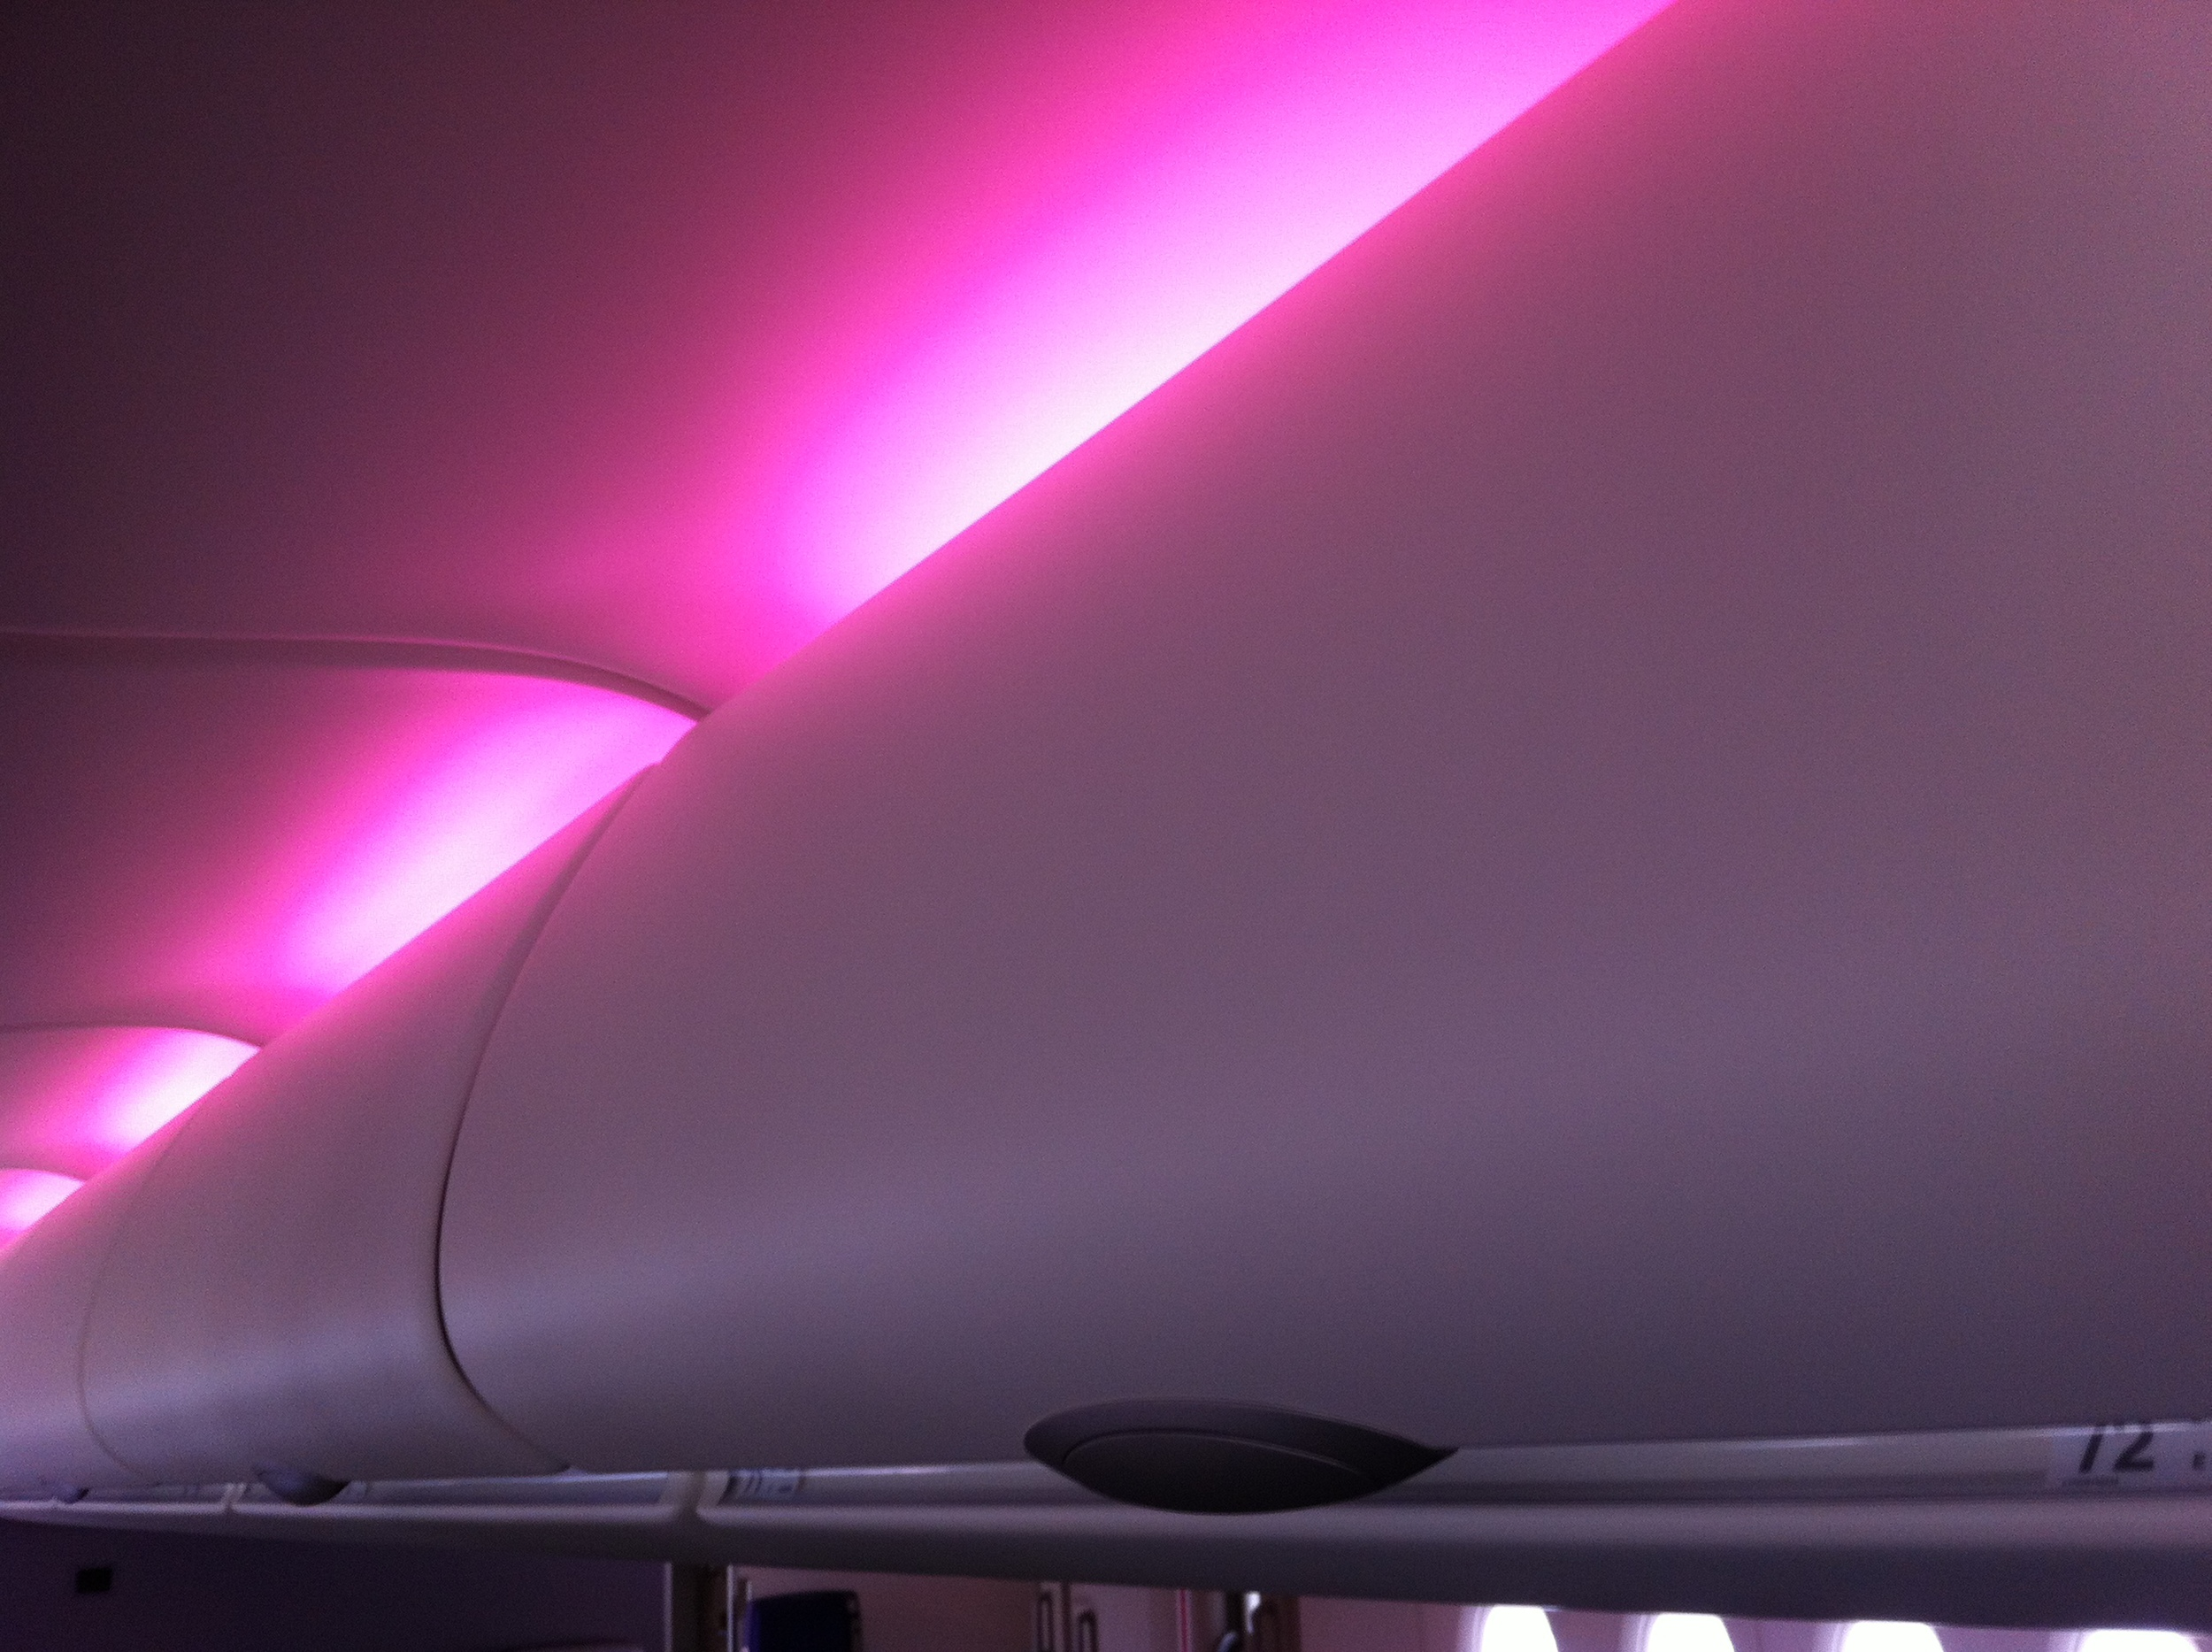 Night club decoration? No! those are the new generation overhead bins on-board!